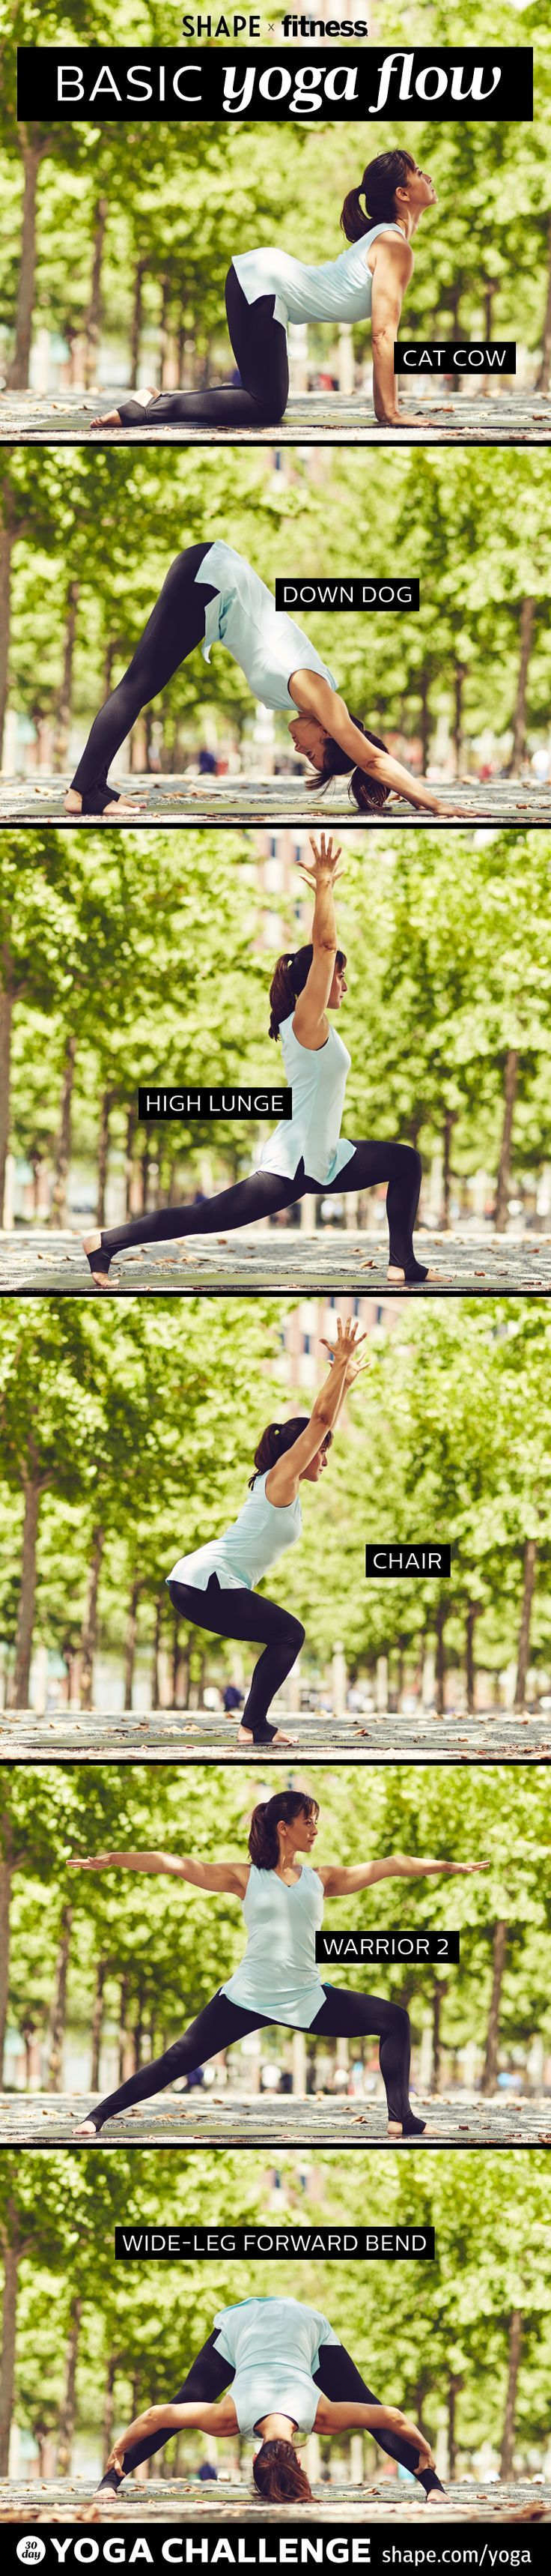 Start your week feeling refreshed and balanced with our Basic Yoga Flow From SHAPE and Two Fit Moms. Flow through each pose at least three times for best results. #yoga